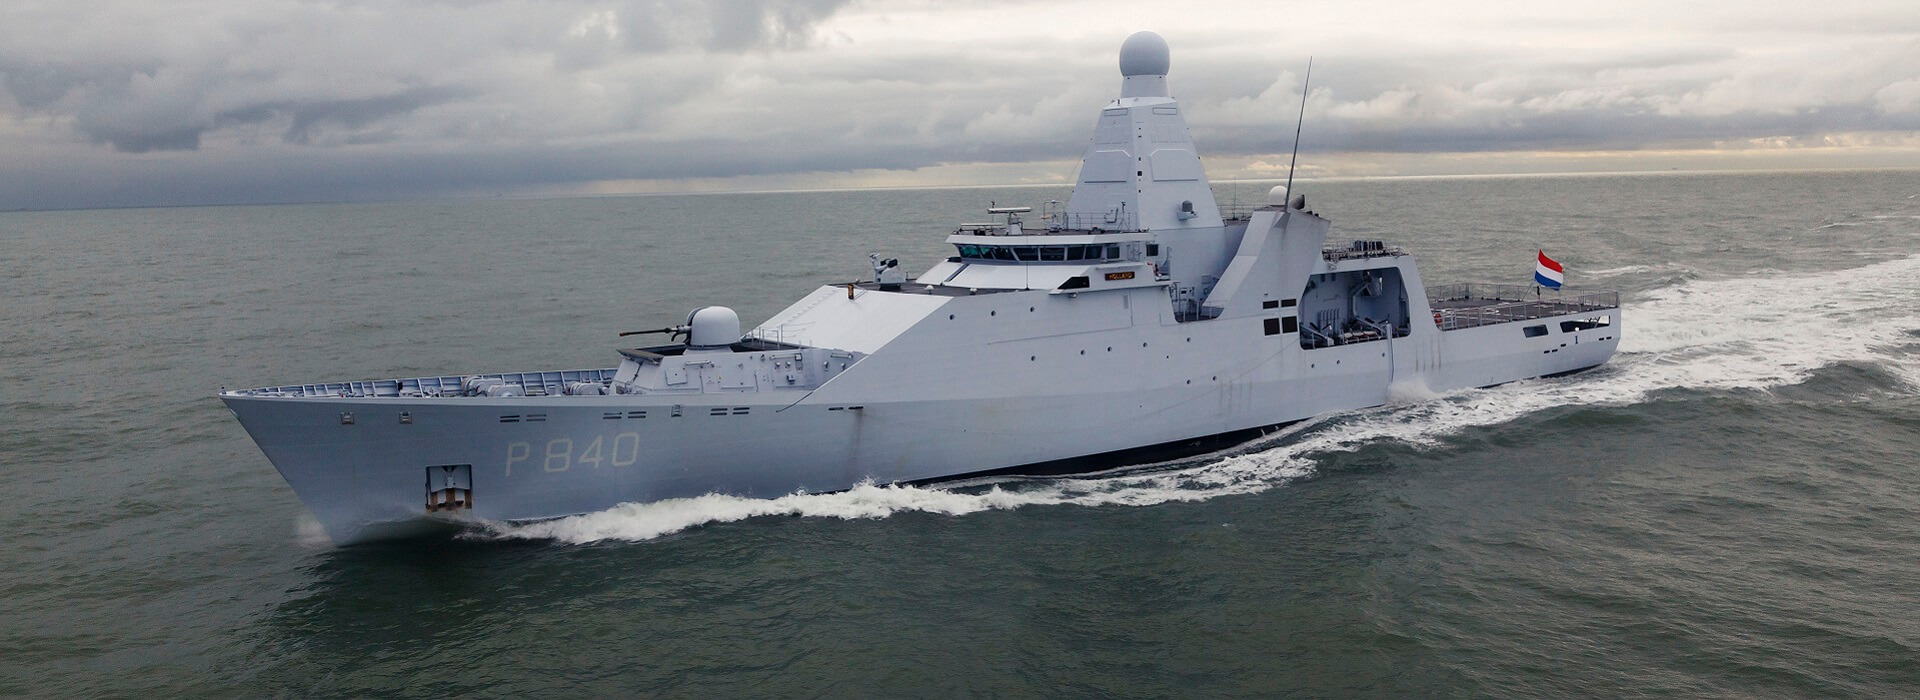 Zr.Ms. Friesland борт №410